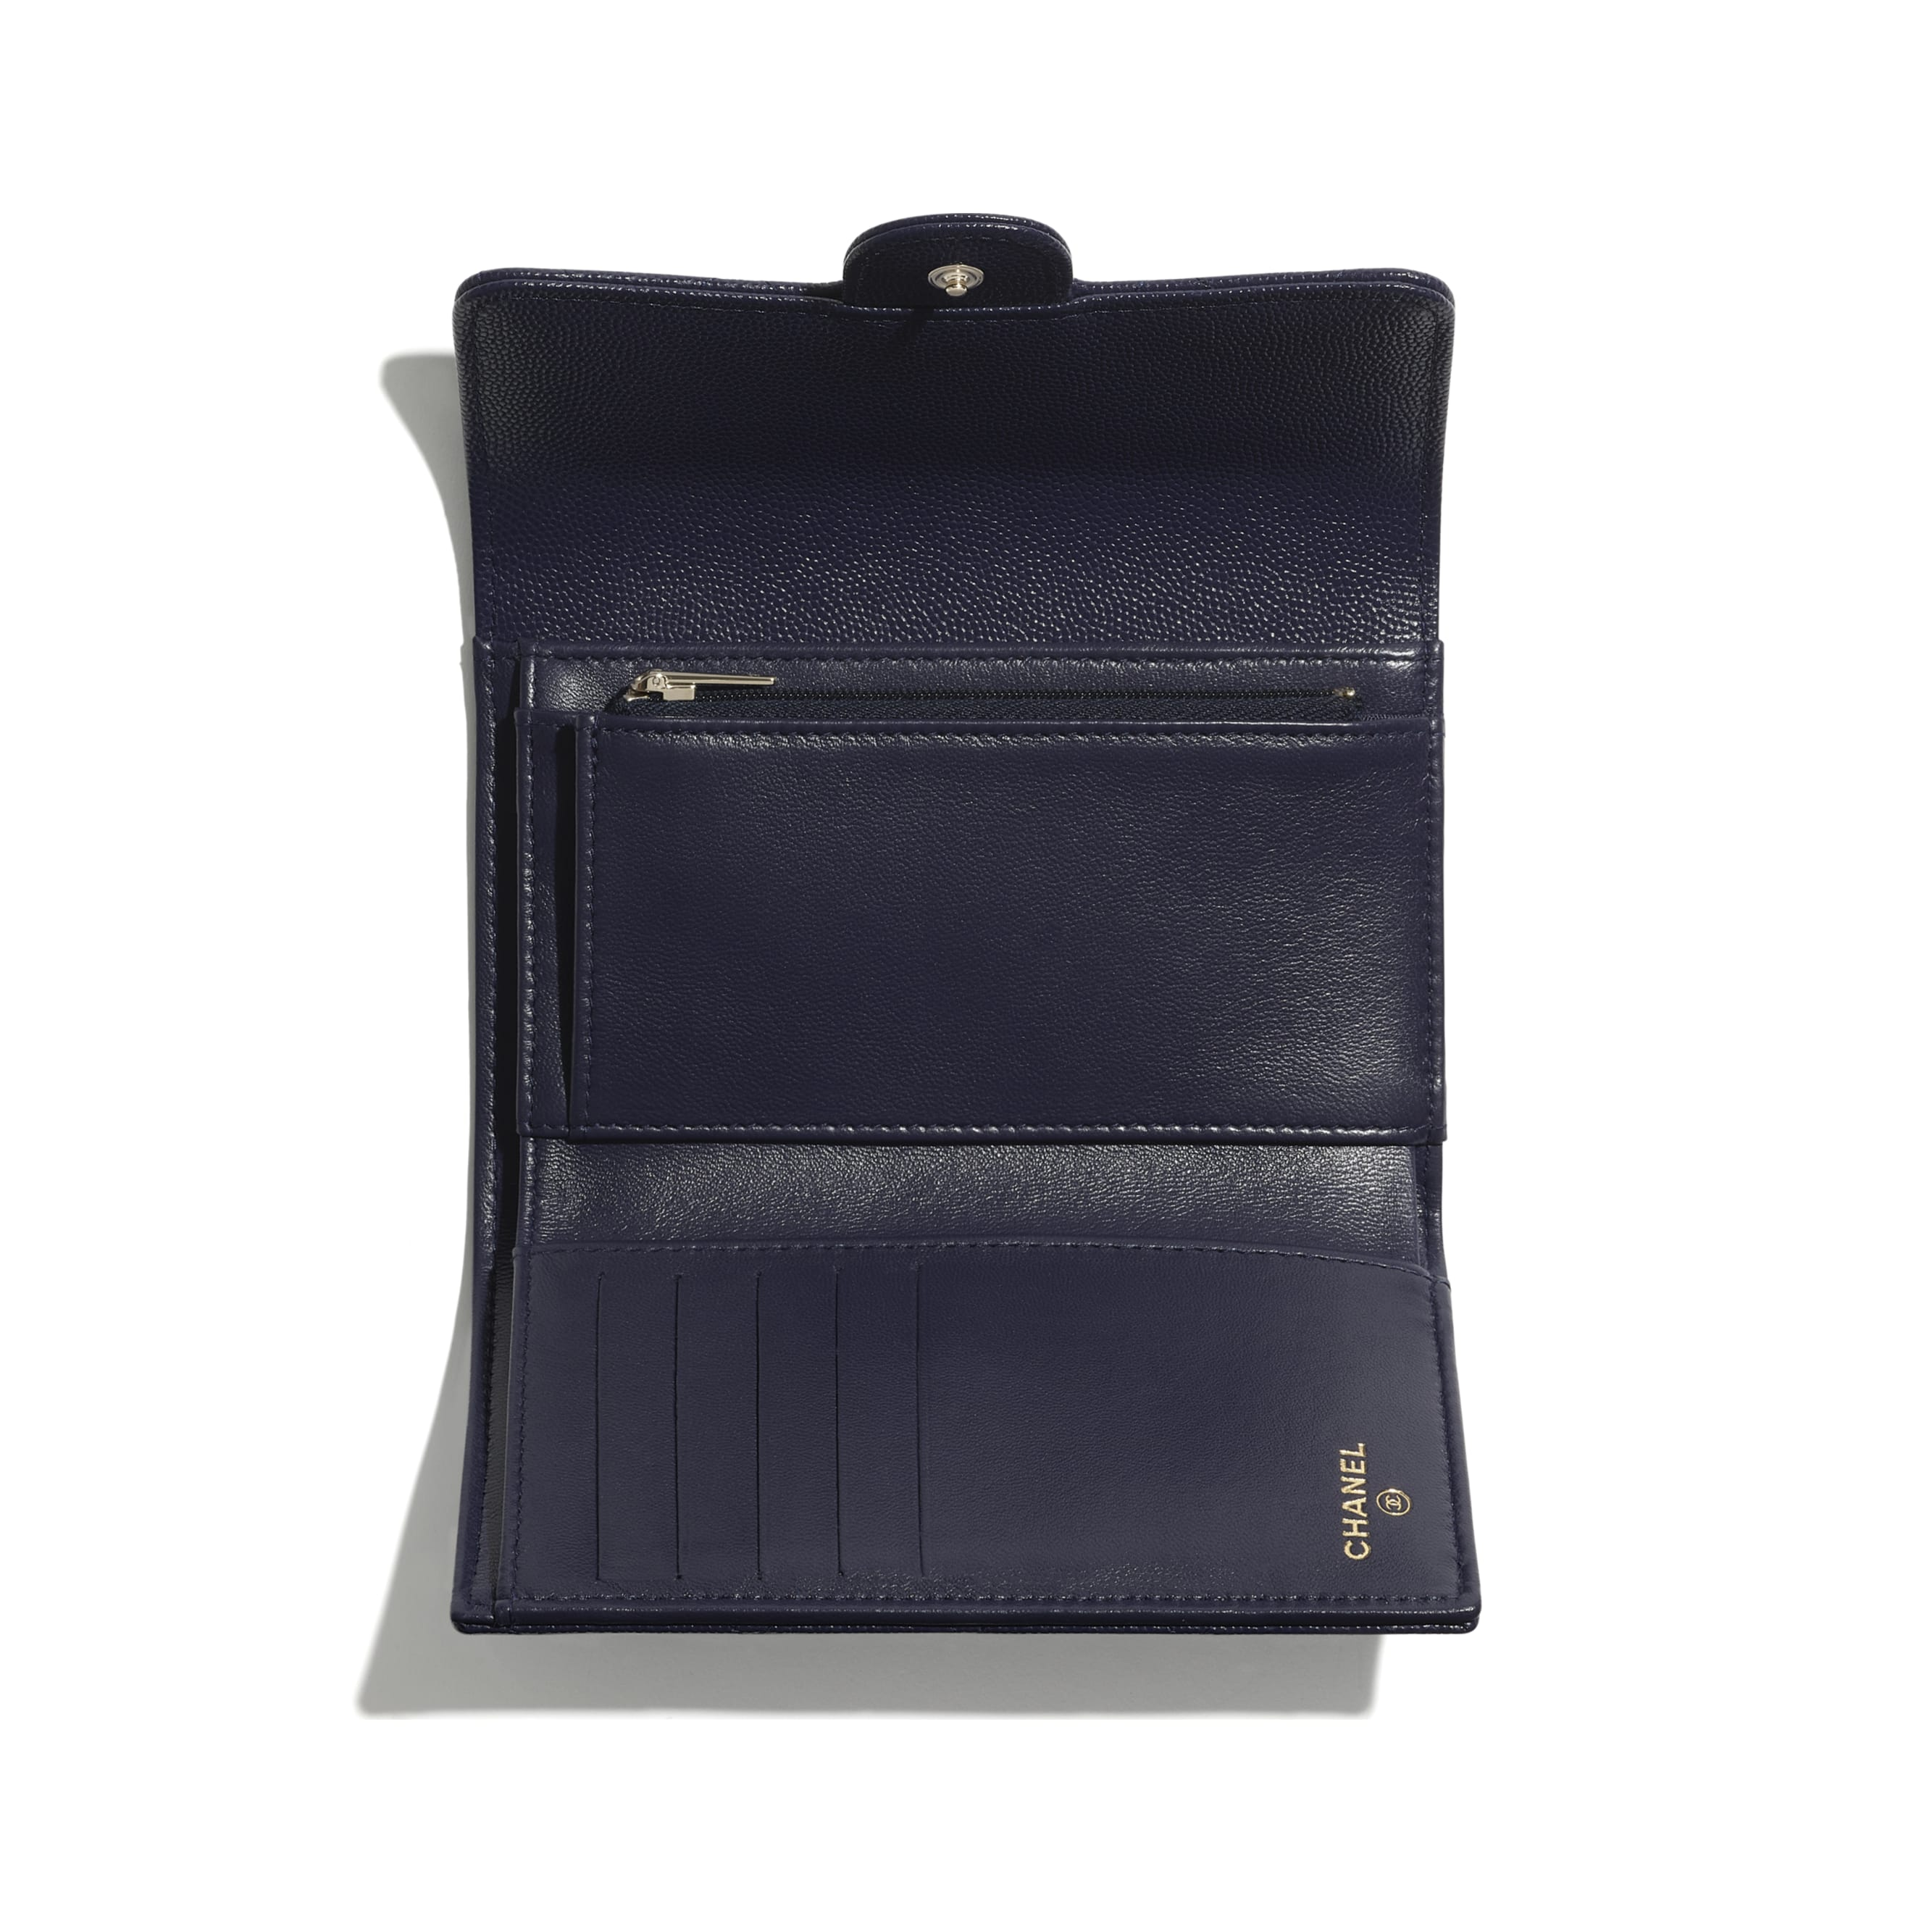 Classic Flap Wallet - Navy Blue - Grained Calfskin & Gold-Tone Metal - CHANEL - Alternative view - see standard sized version